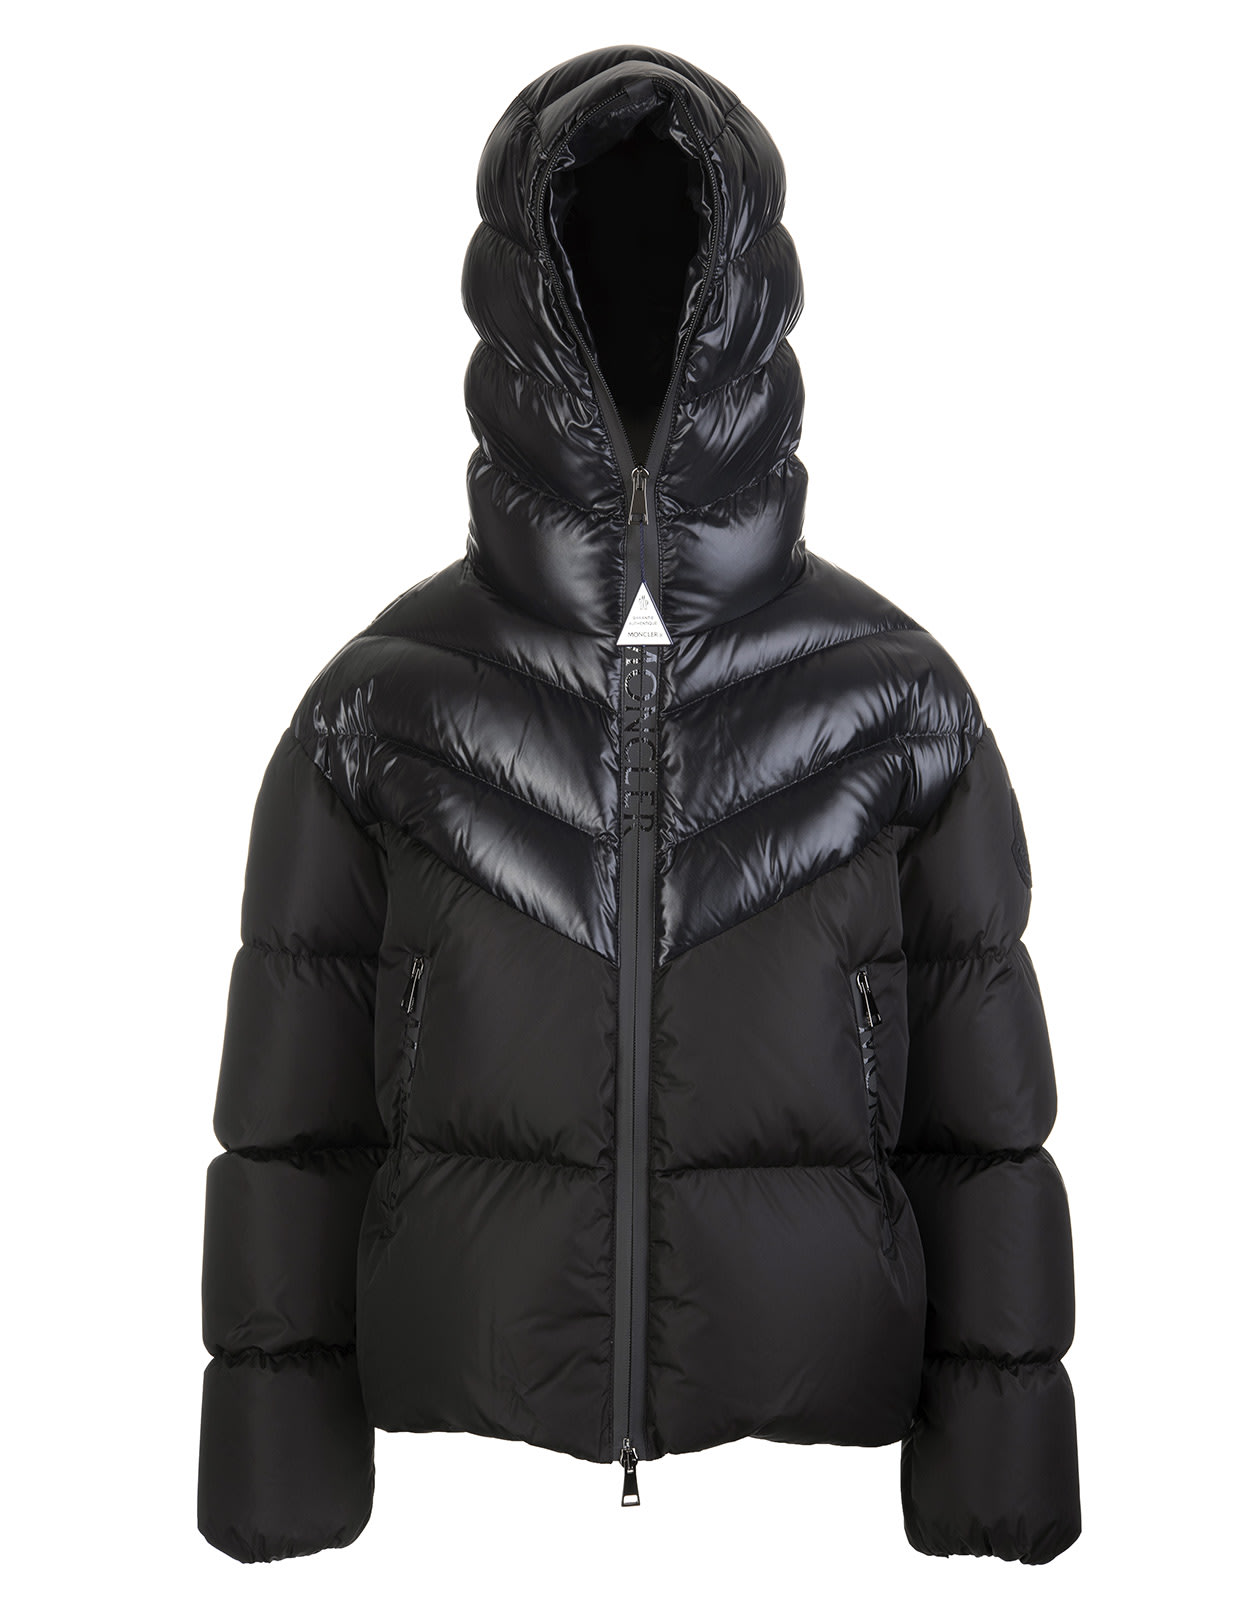 Moncler WOMAN BLACK GUENIOC DOWN JACKET